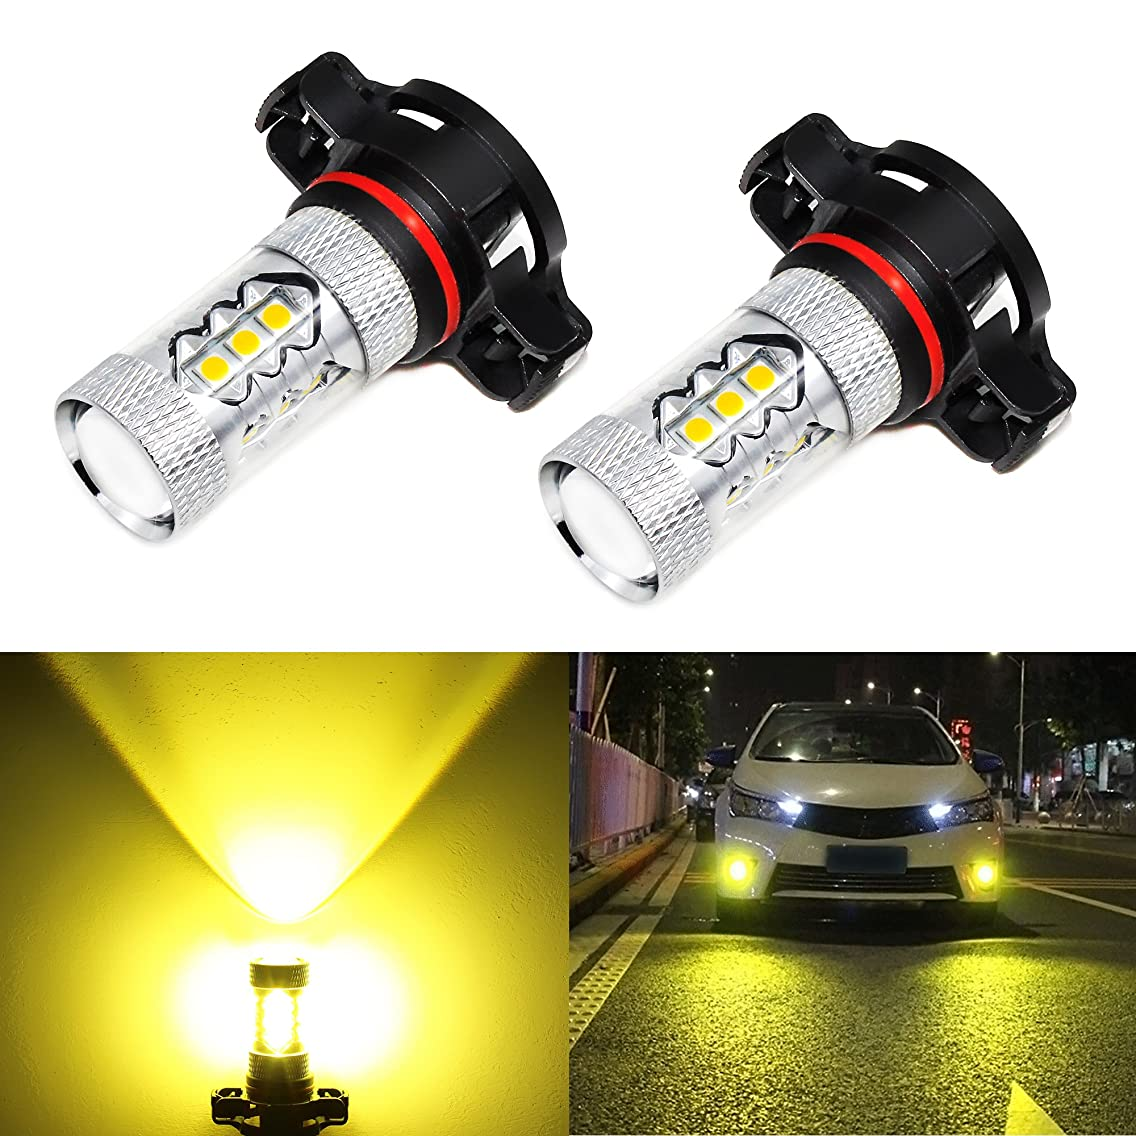 Phinlion 2000 Lumens Super Bright 3030 16-SMD Gold Yellow PSX24W 2504 LED Fog Light Bulbs for DRL or Fog Lights Replacement